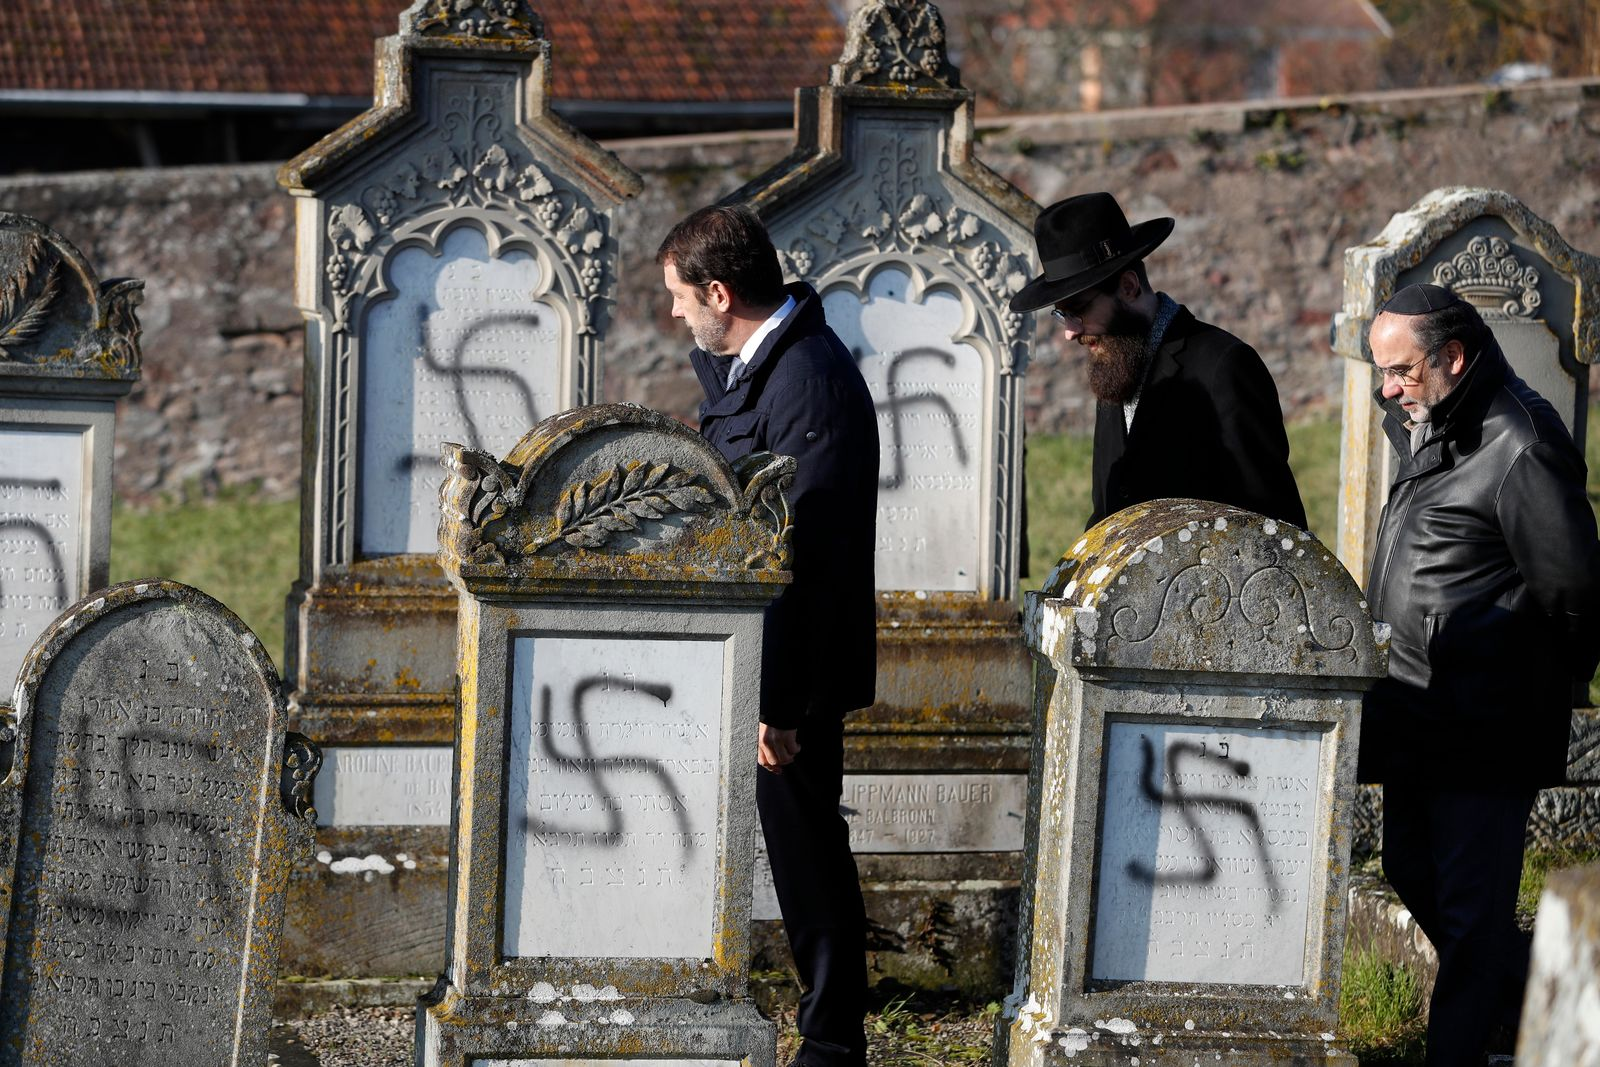 French Interior Minister Christophe Castaner, center, followed by Strasbourg chief Rabbi Harold Abraham Weill, second right, walk amid vandalized tombs in the Jewish cemetery of Westhoffen, west of the city of Strasbourg, eastern France, Wednesday, Dec. 4, 2019.{ } (AP Photo/Jean-Francois Badias)